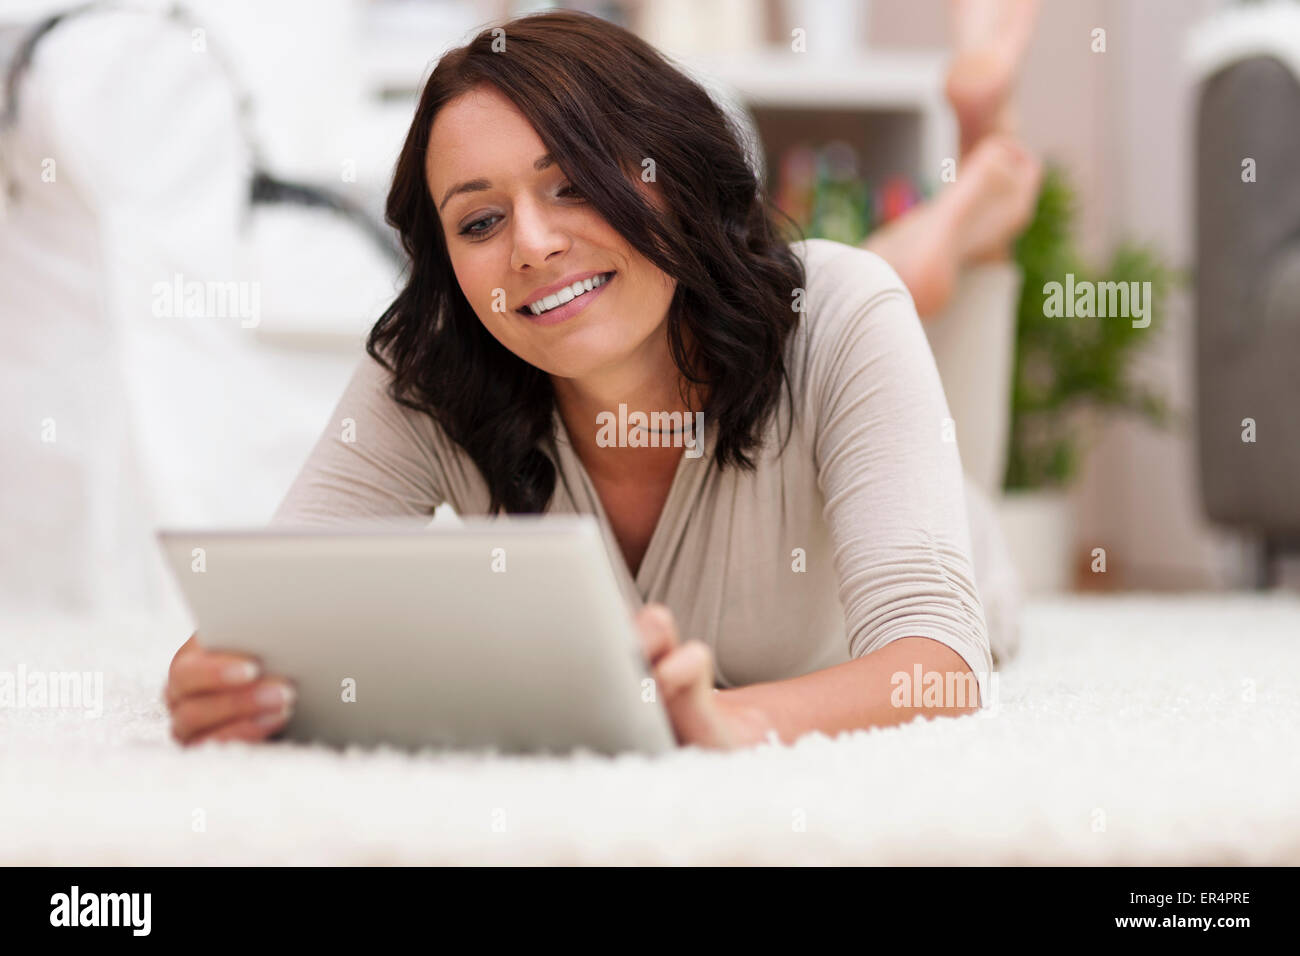 I have to check something on my digital tablet. Debica, Poland - Stock Image